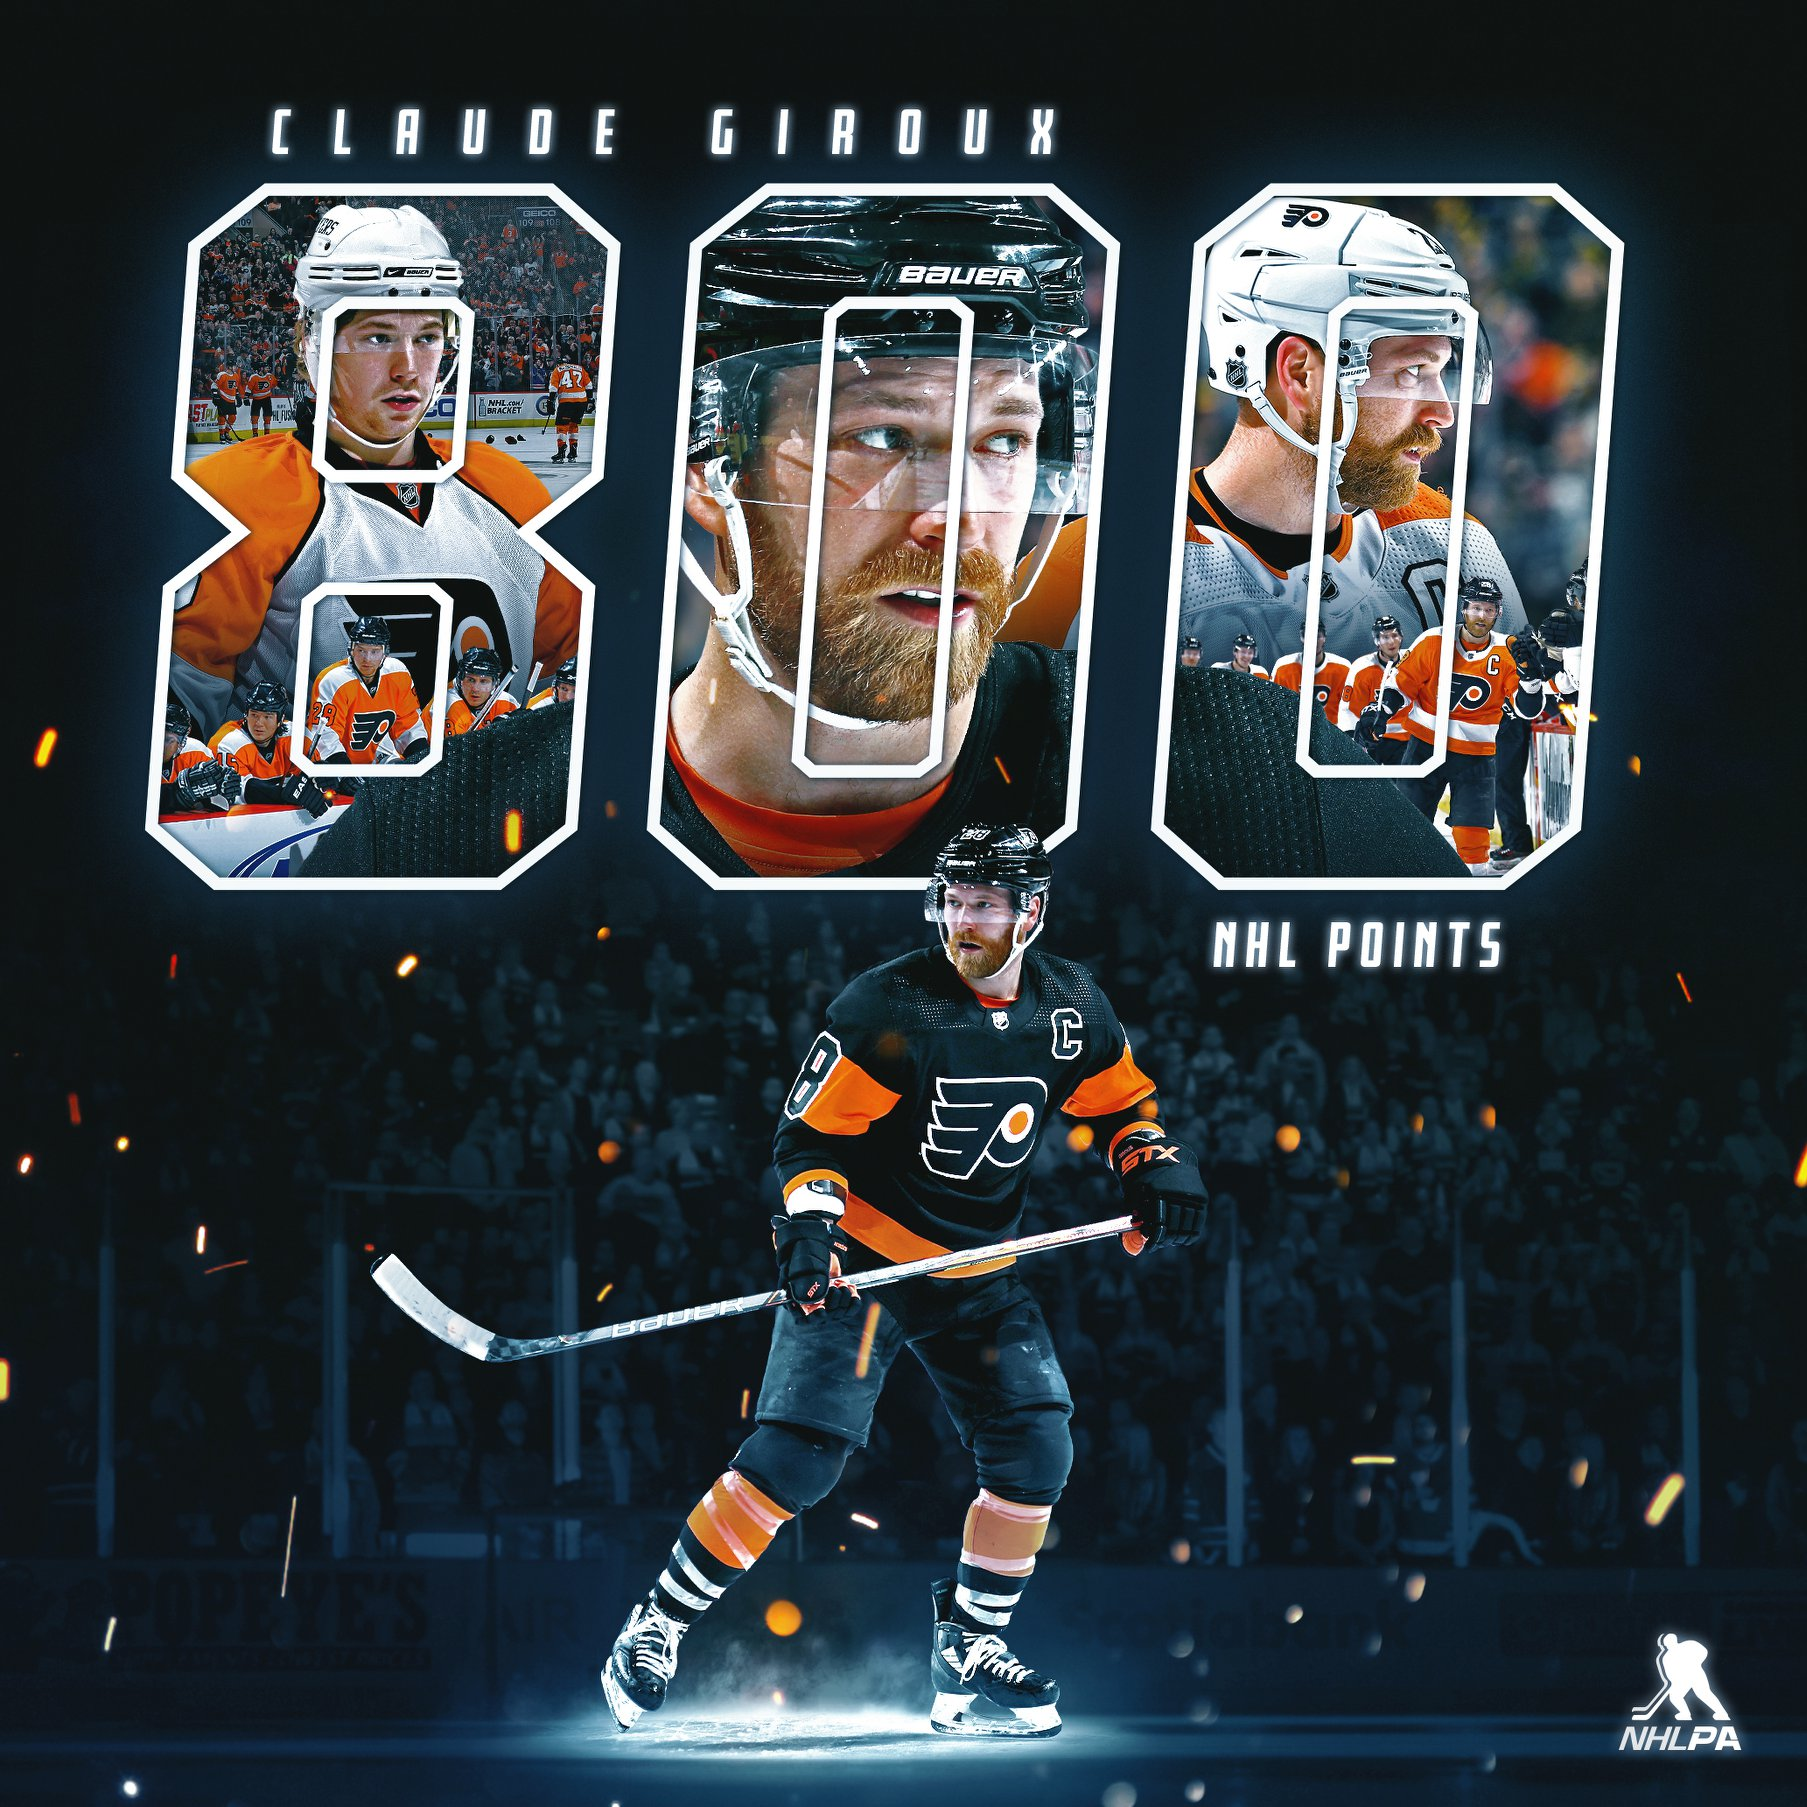 That's 800 NHL career points for the @NHLFlyers captain – congrats to @28CGiroux! https://t.co/0BEtZUdoYy